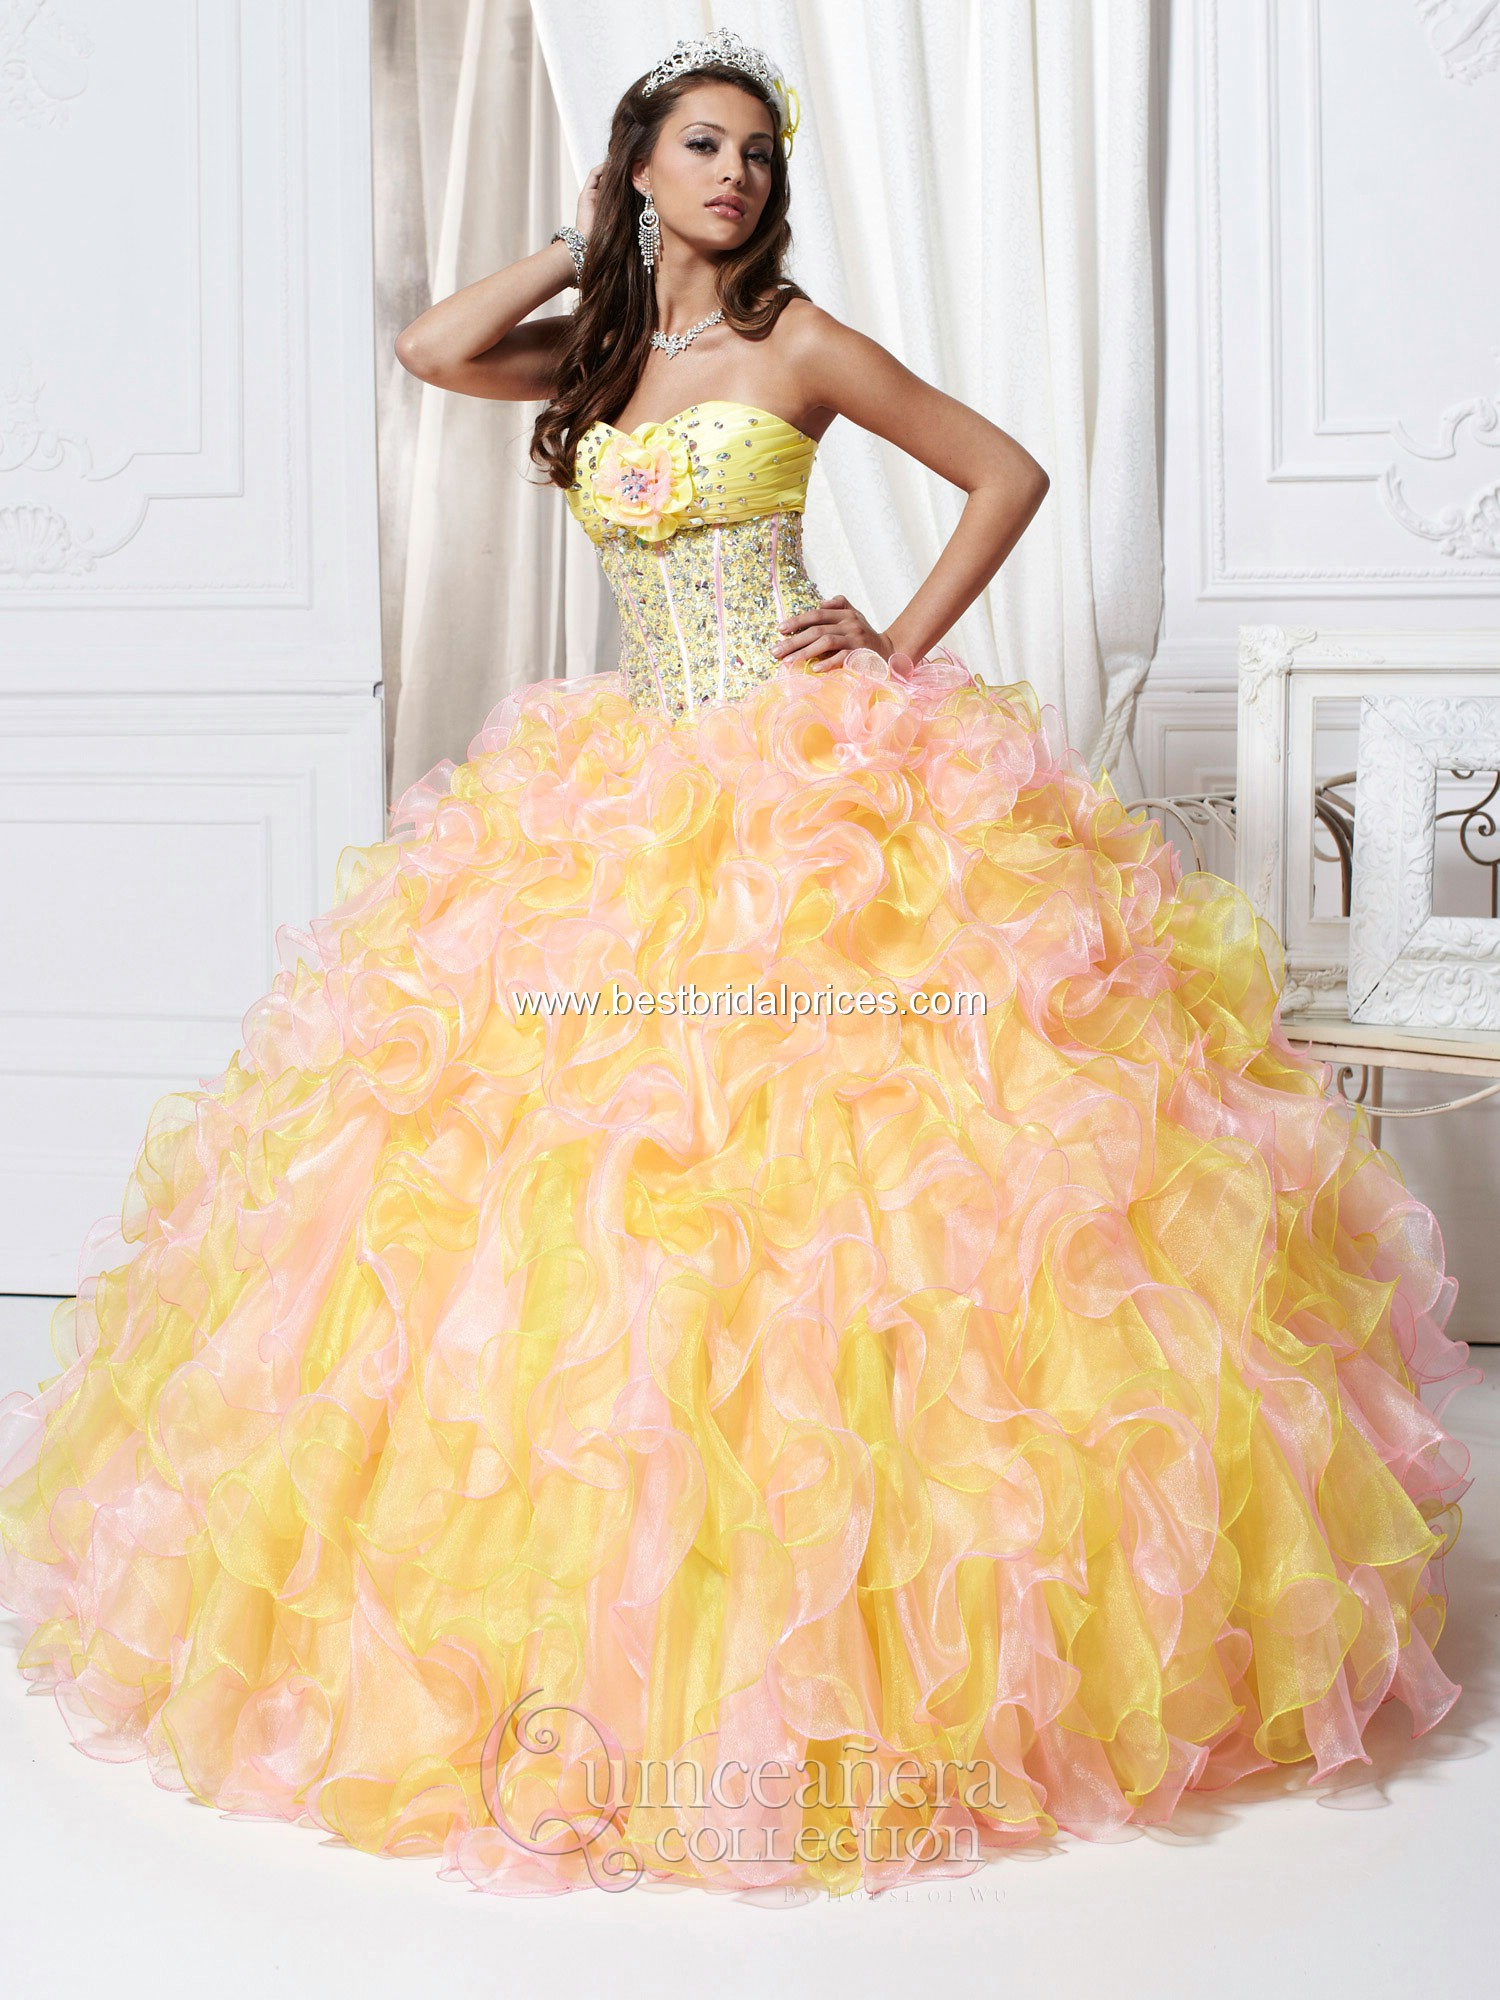 7d032b80428 yellow quinceanera. Quinceanera themes